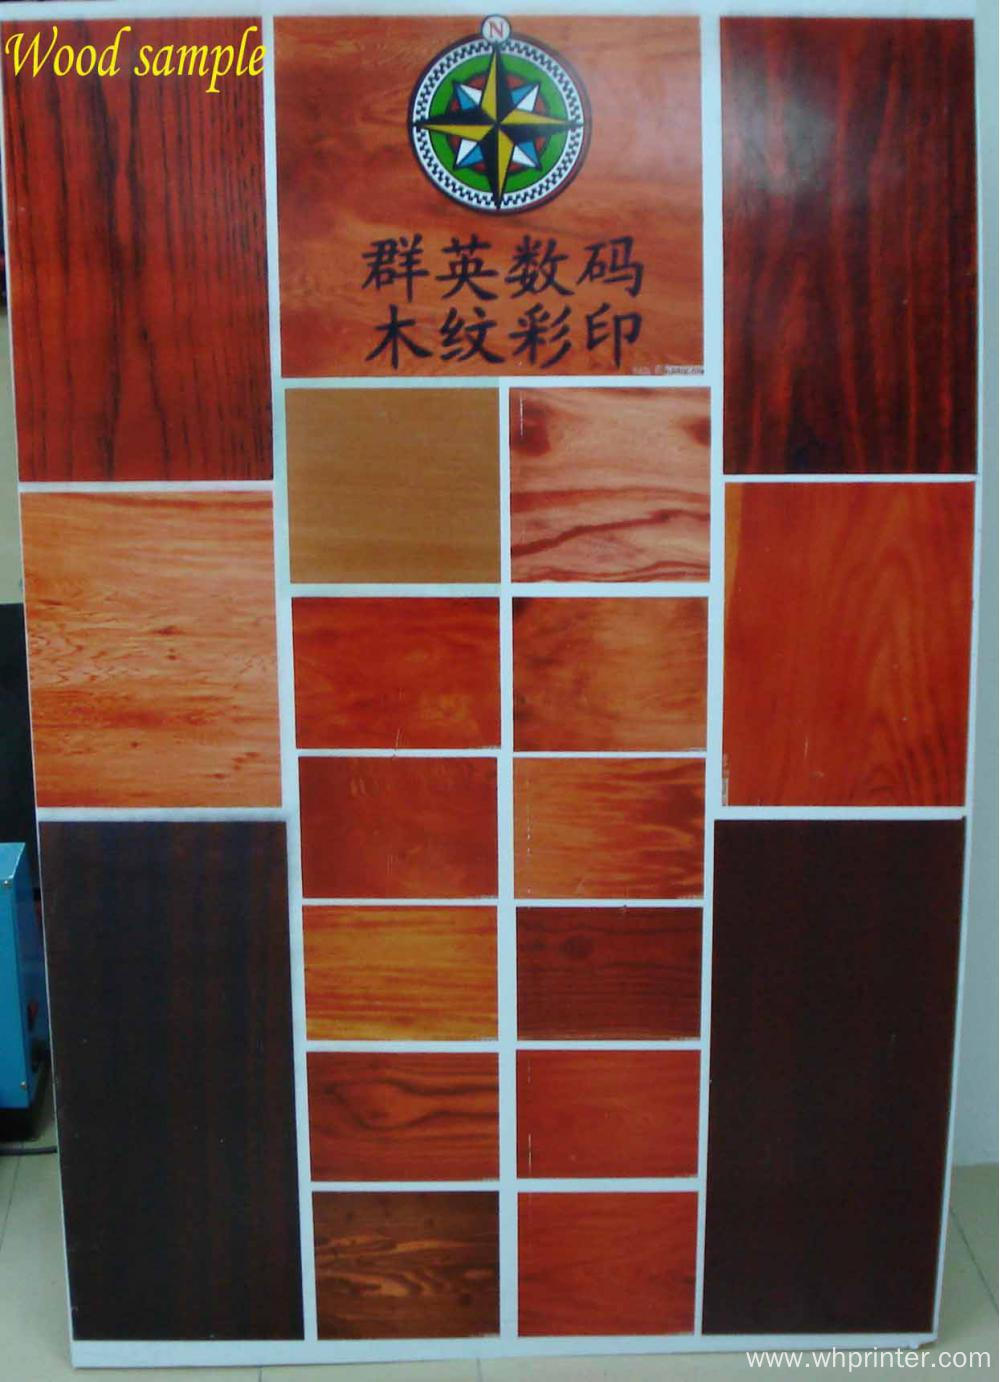 Digital Wood Souvenir and Crafts Printer